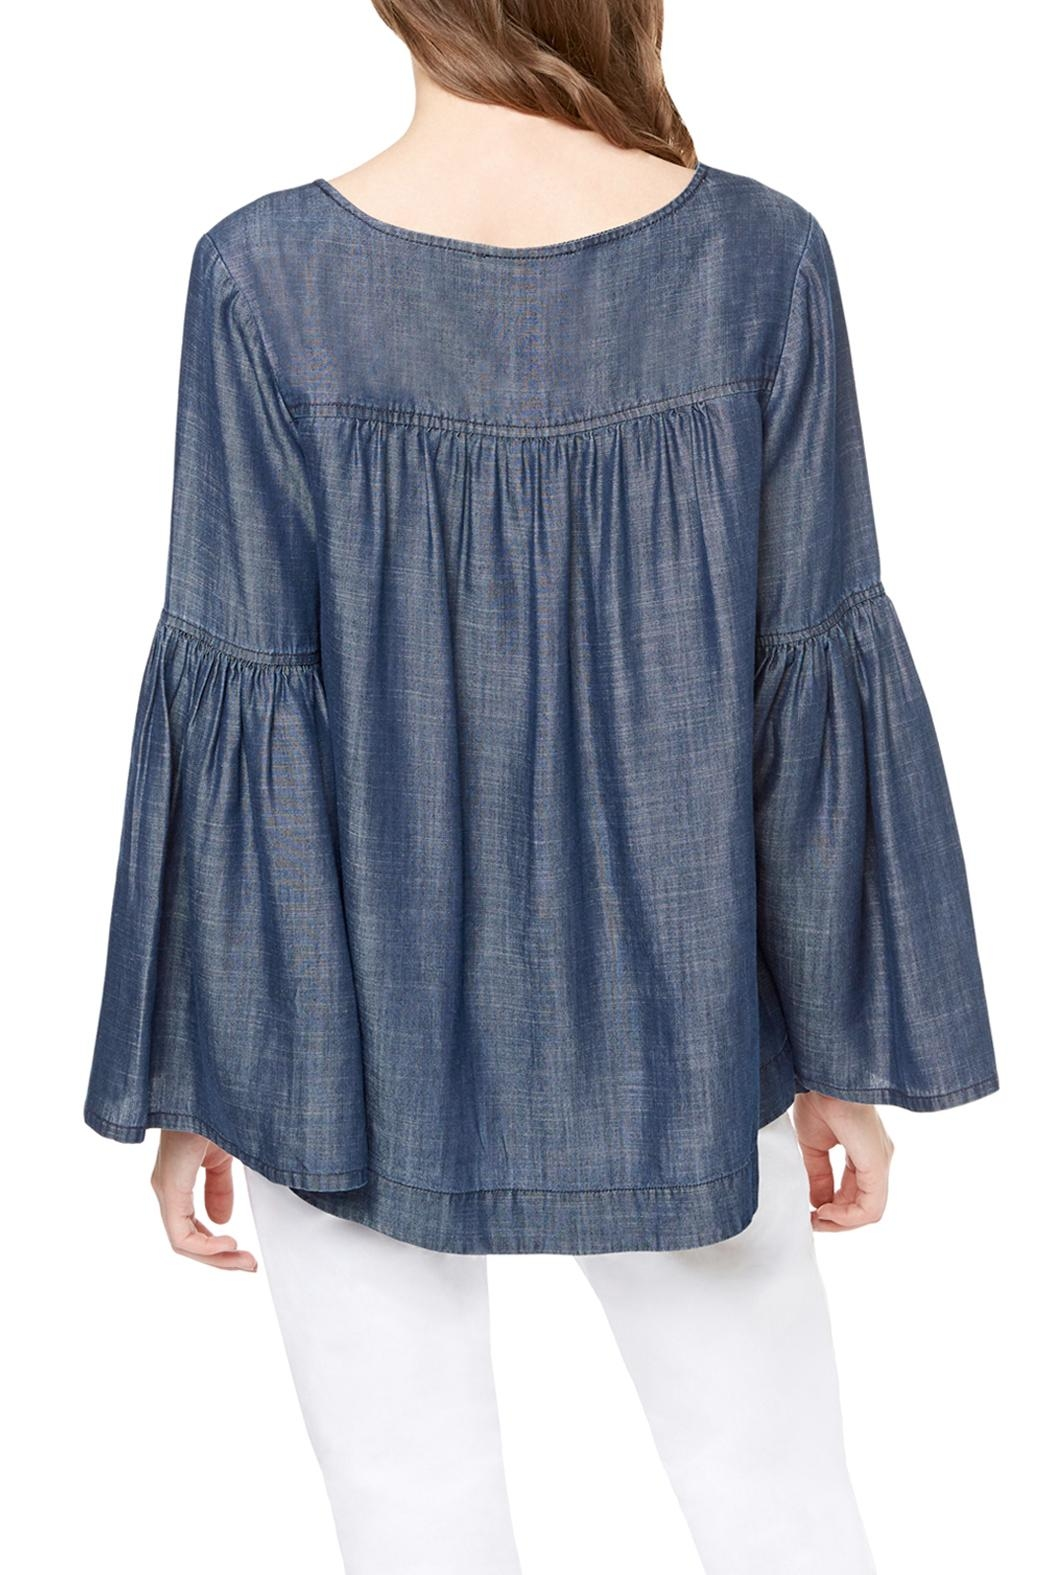 Sanctuary Lila Lace Up Top - Front Full Image